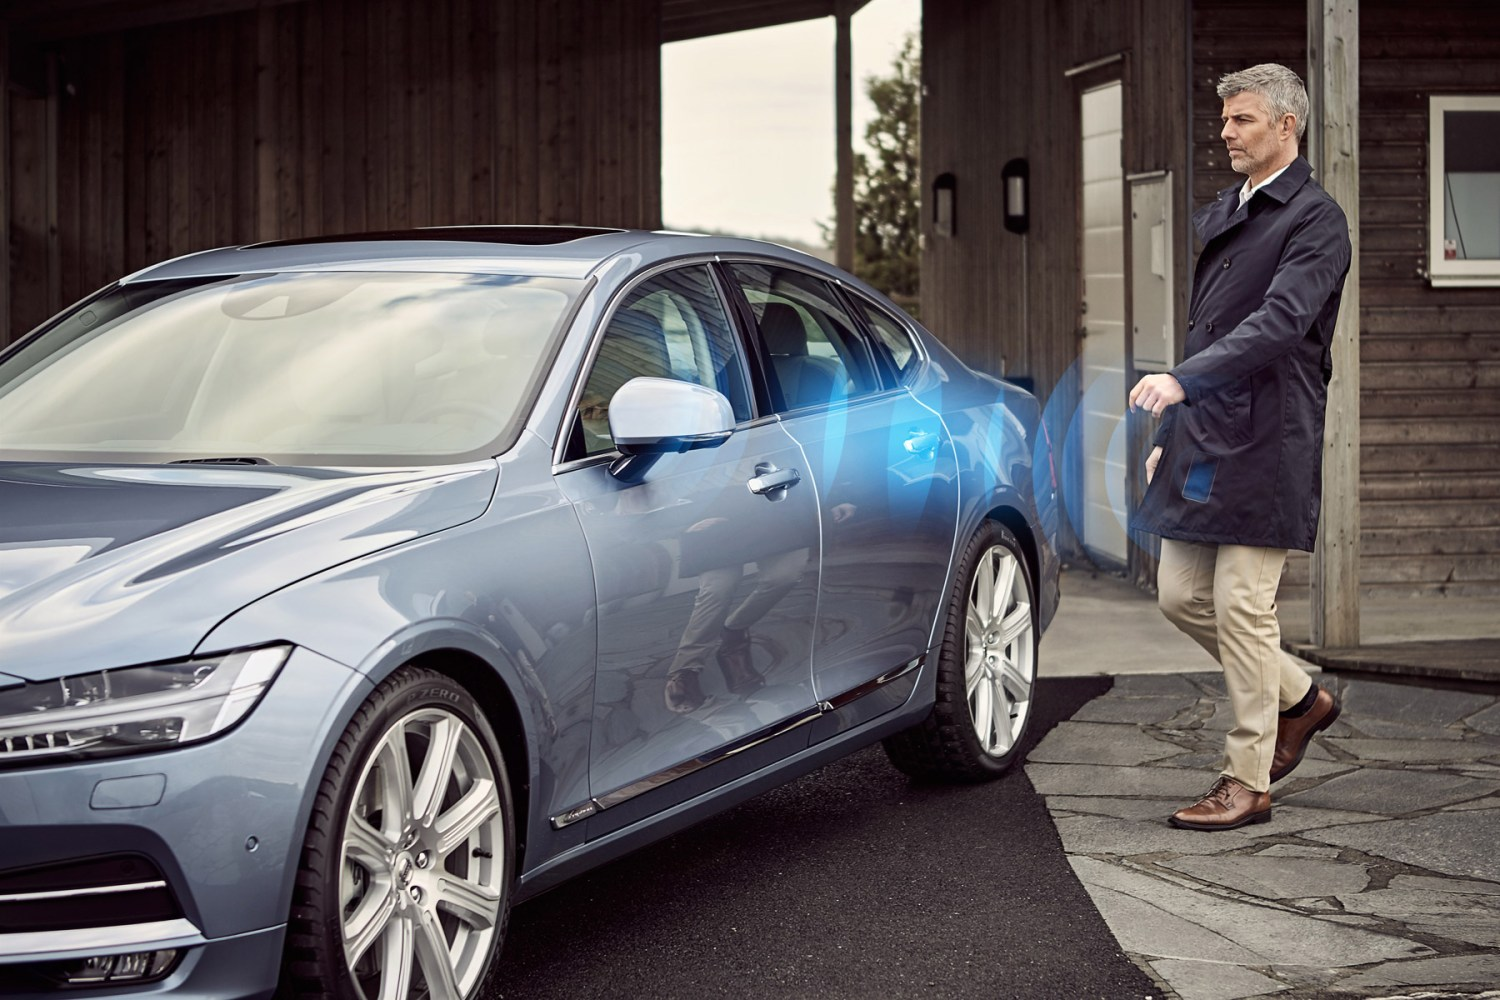 Volvo to sell keyless cars from 2017